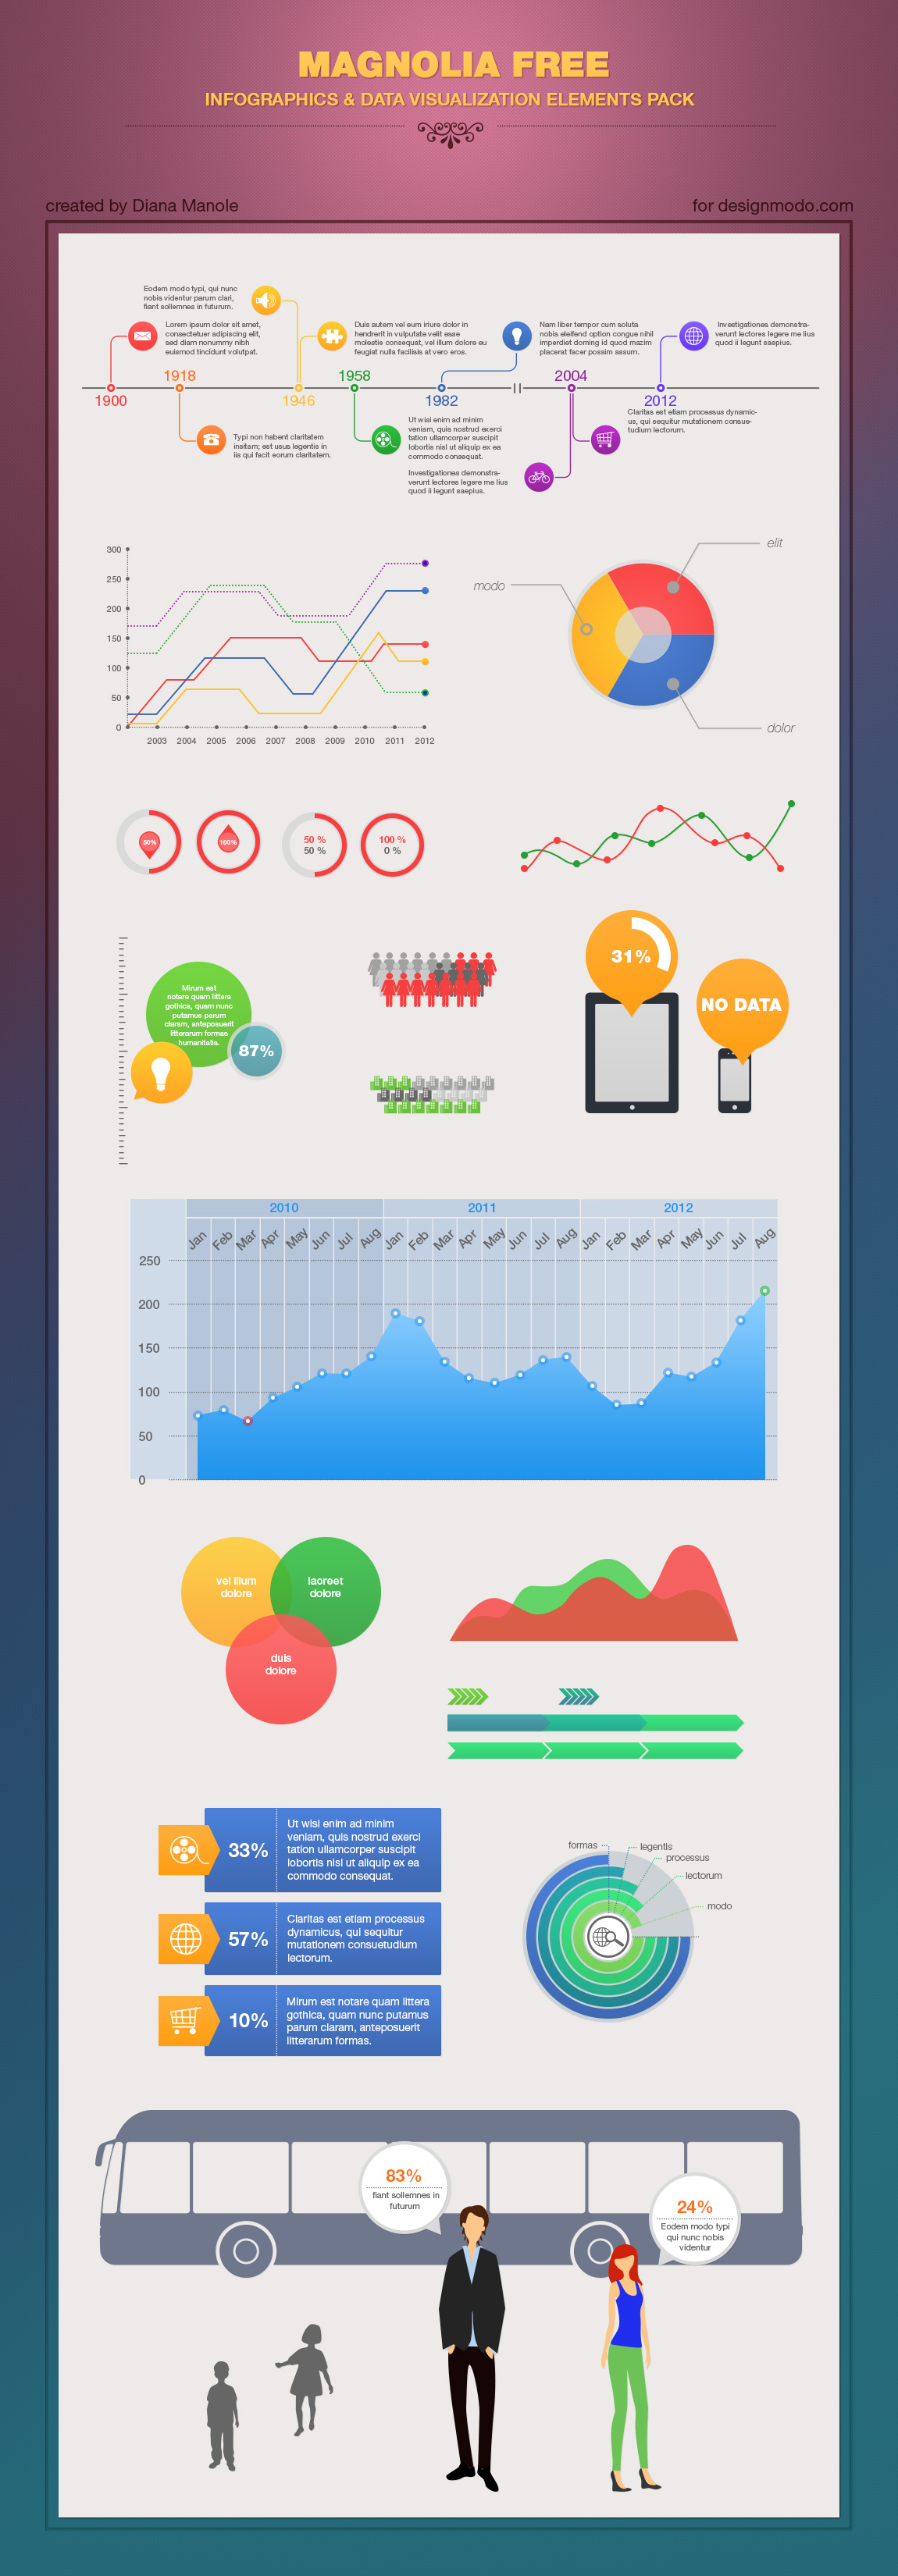 16 Infographic Template PSD Images